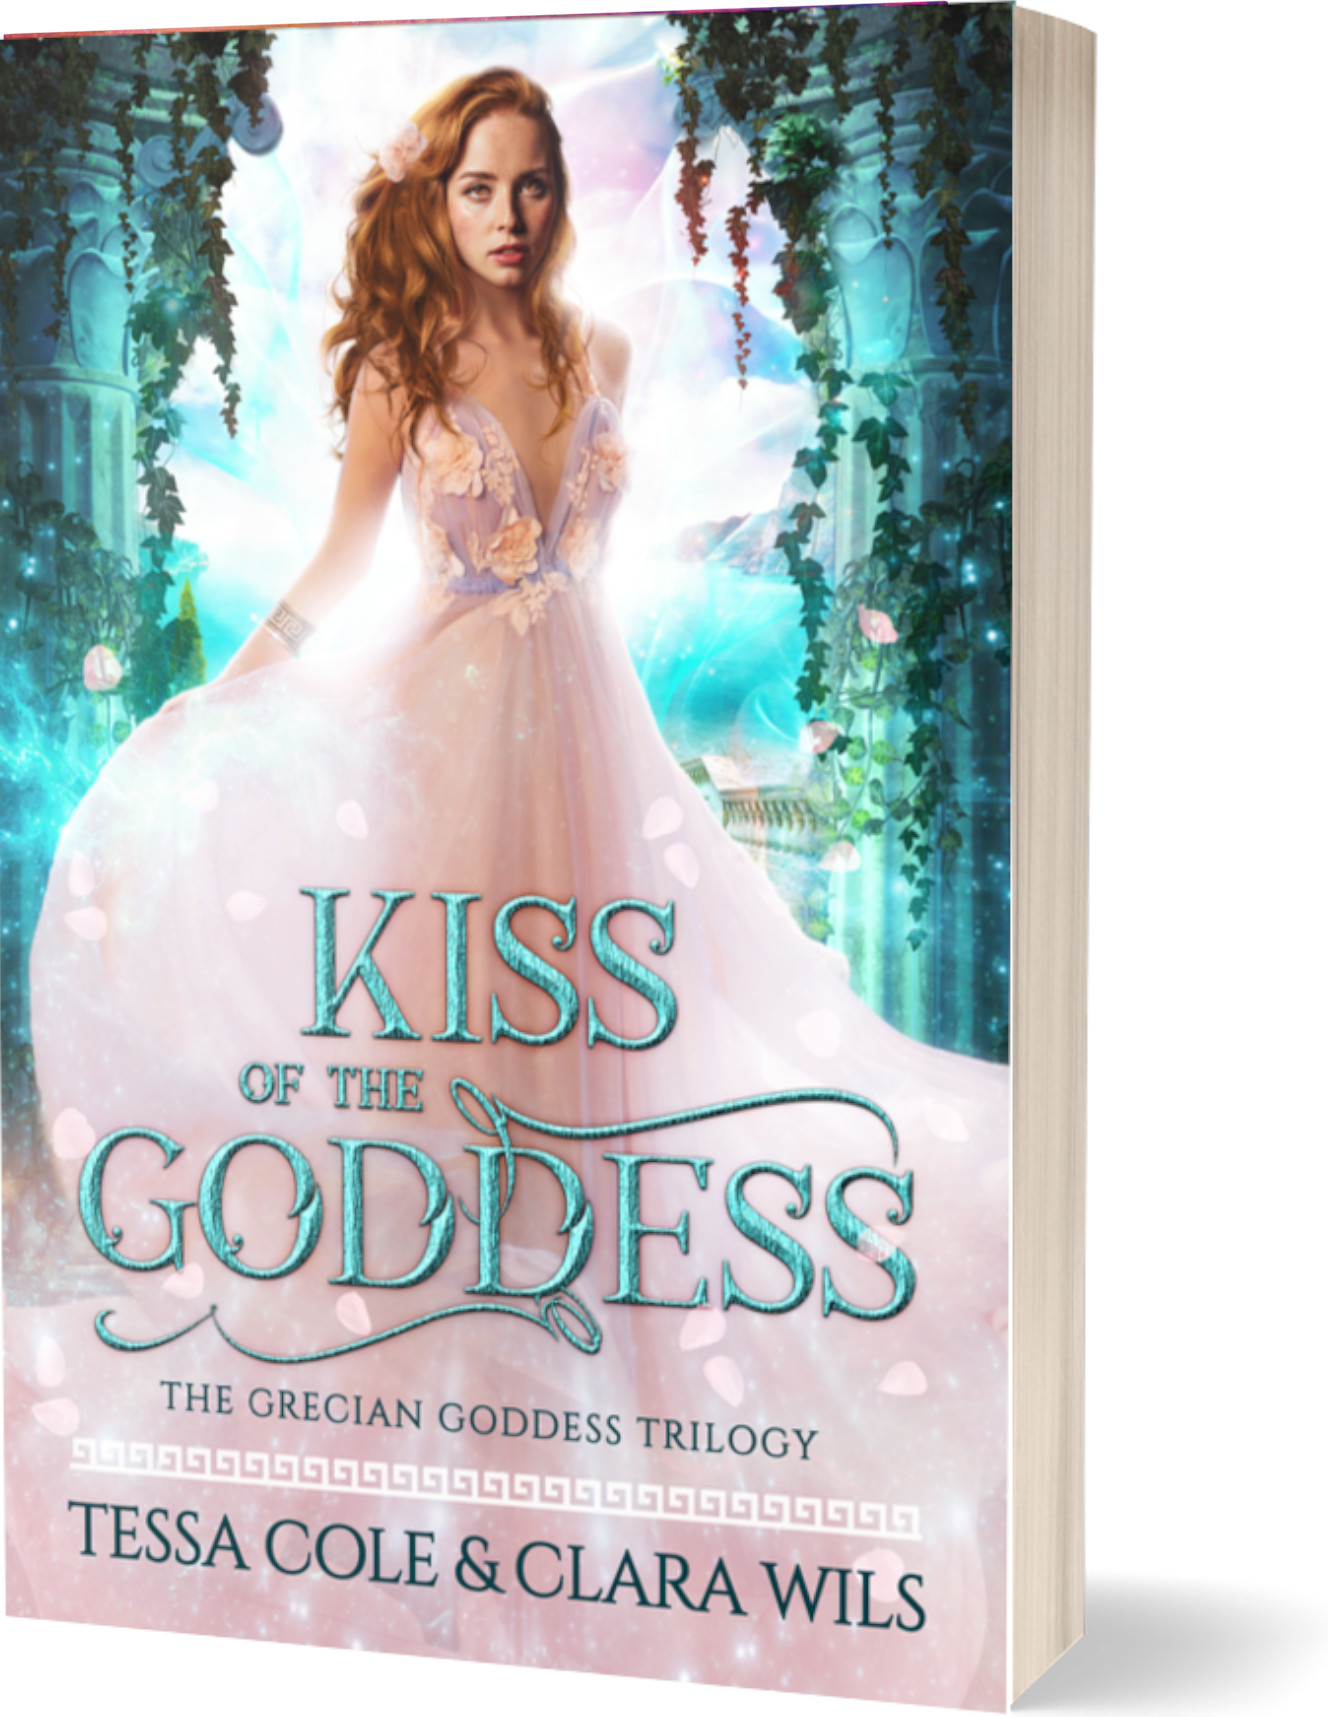 Kiss of the Goddess, a reverse harem paranormal romance and the first book in the Grecian Goddess Trilogy by Tessa Cole